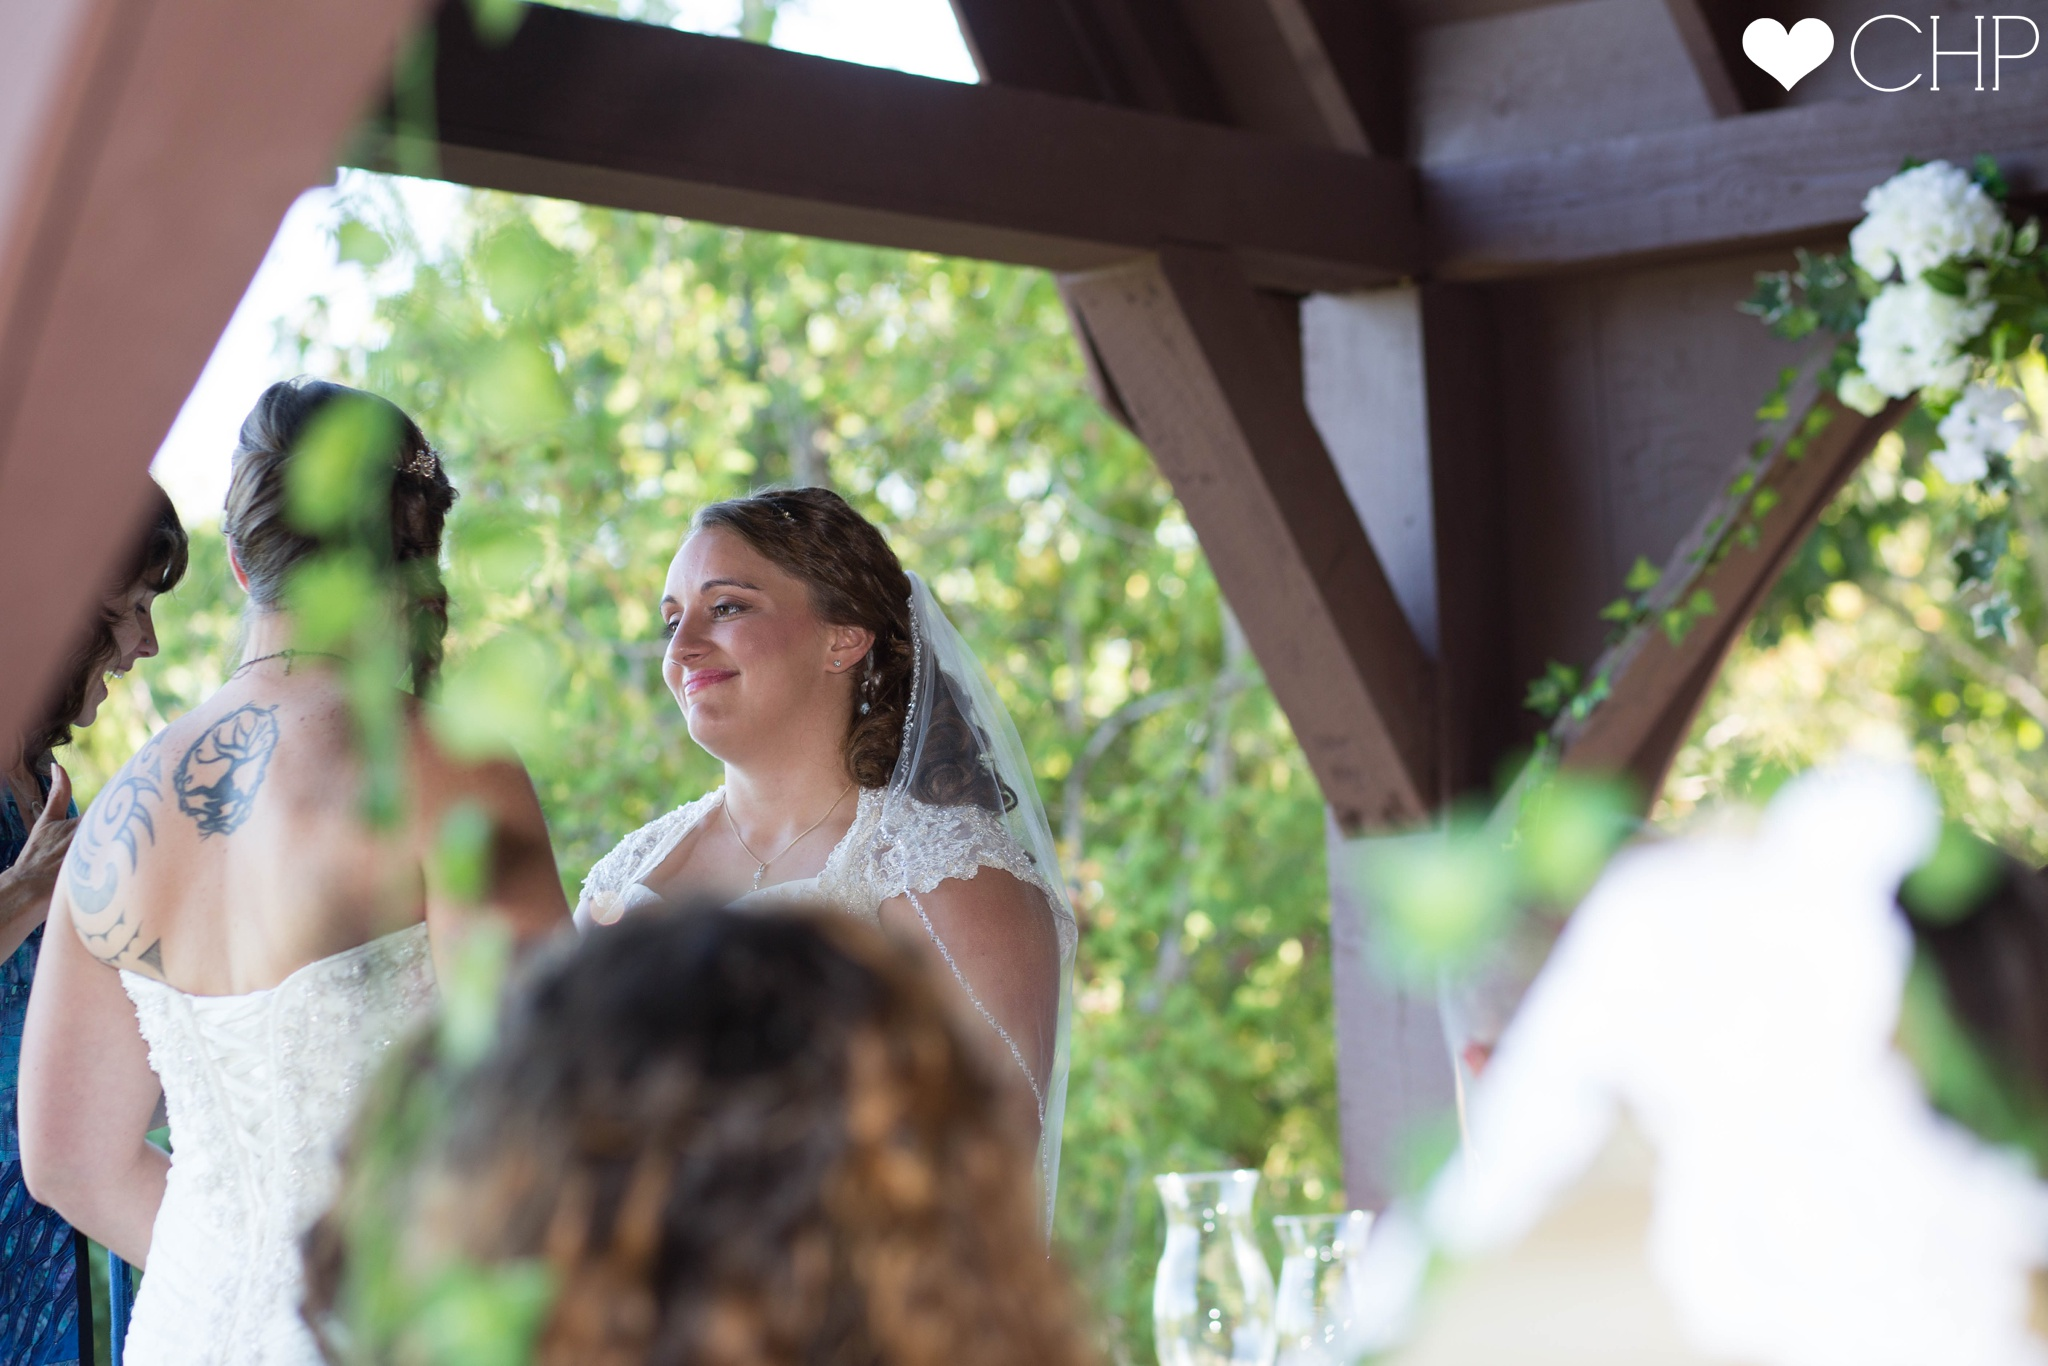 Weddings at the Childrens Chapel